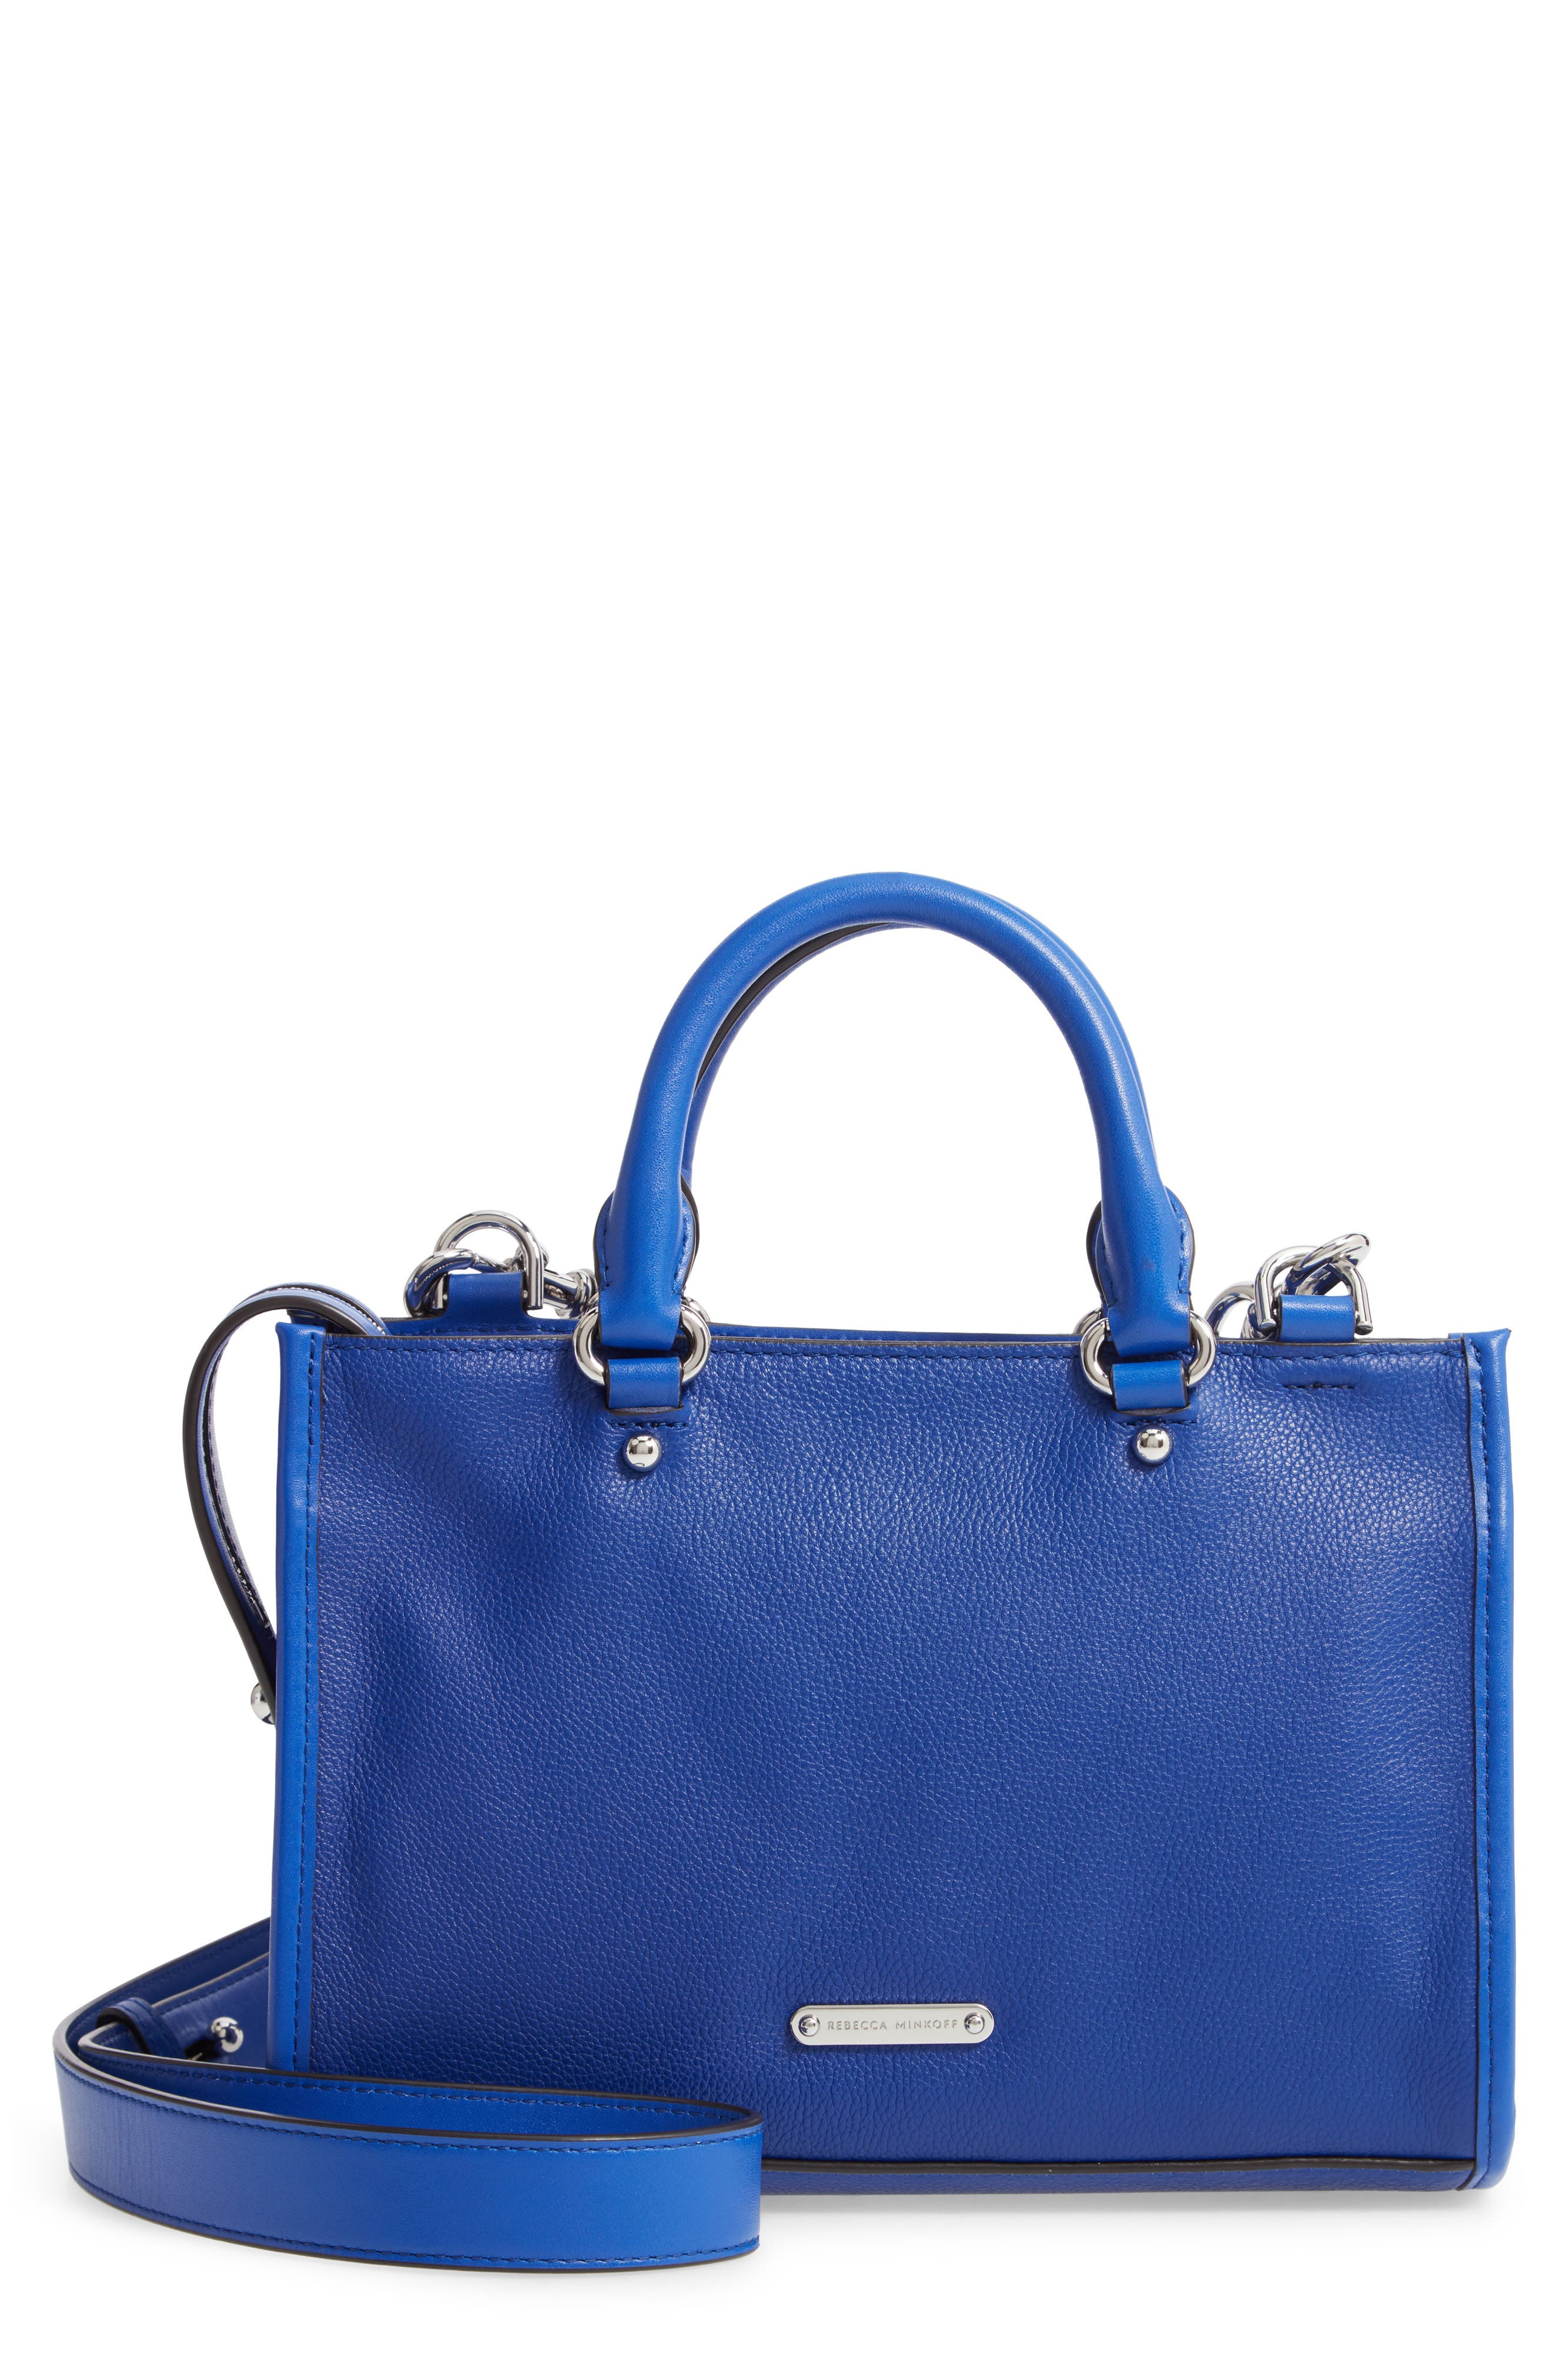 REBECCA MINKOFF, Micro Bedford Leather Satchel, Main thumbnail 1, color, BRIGHT BLUE